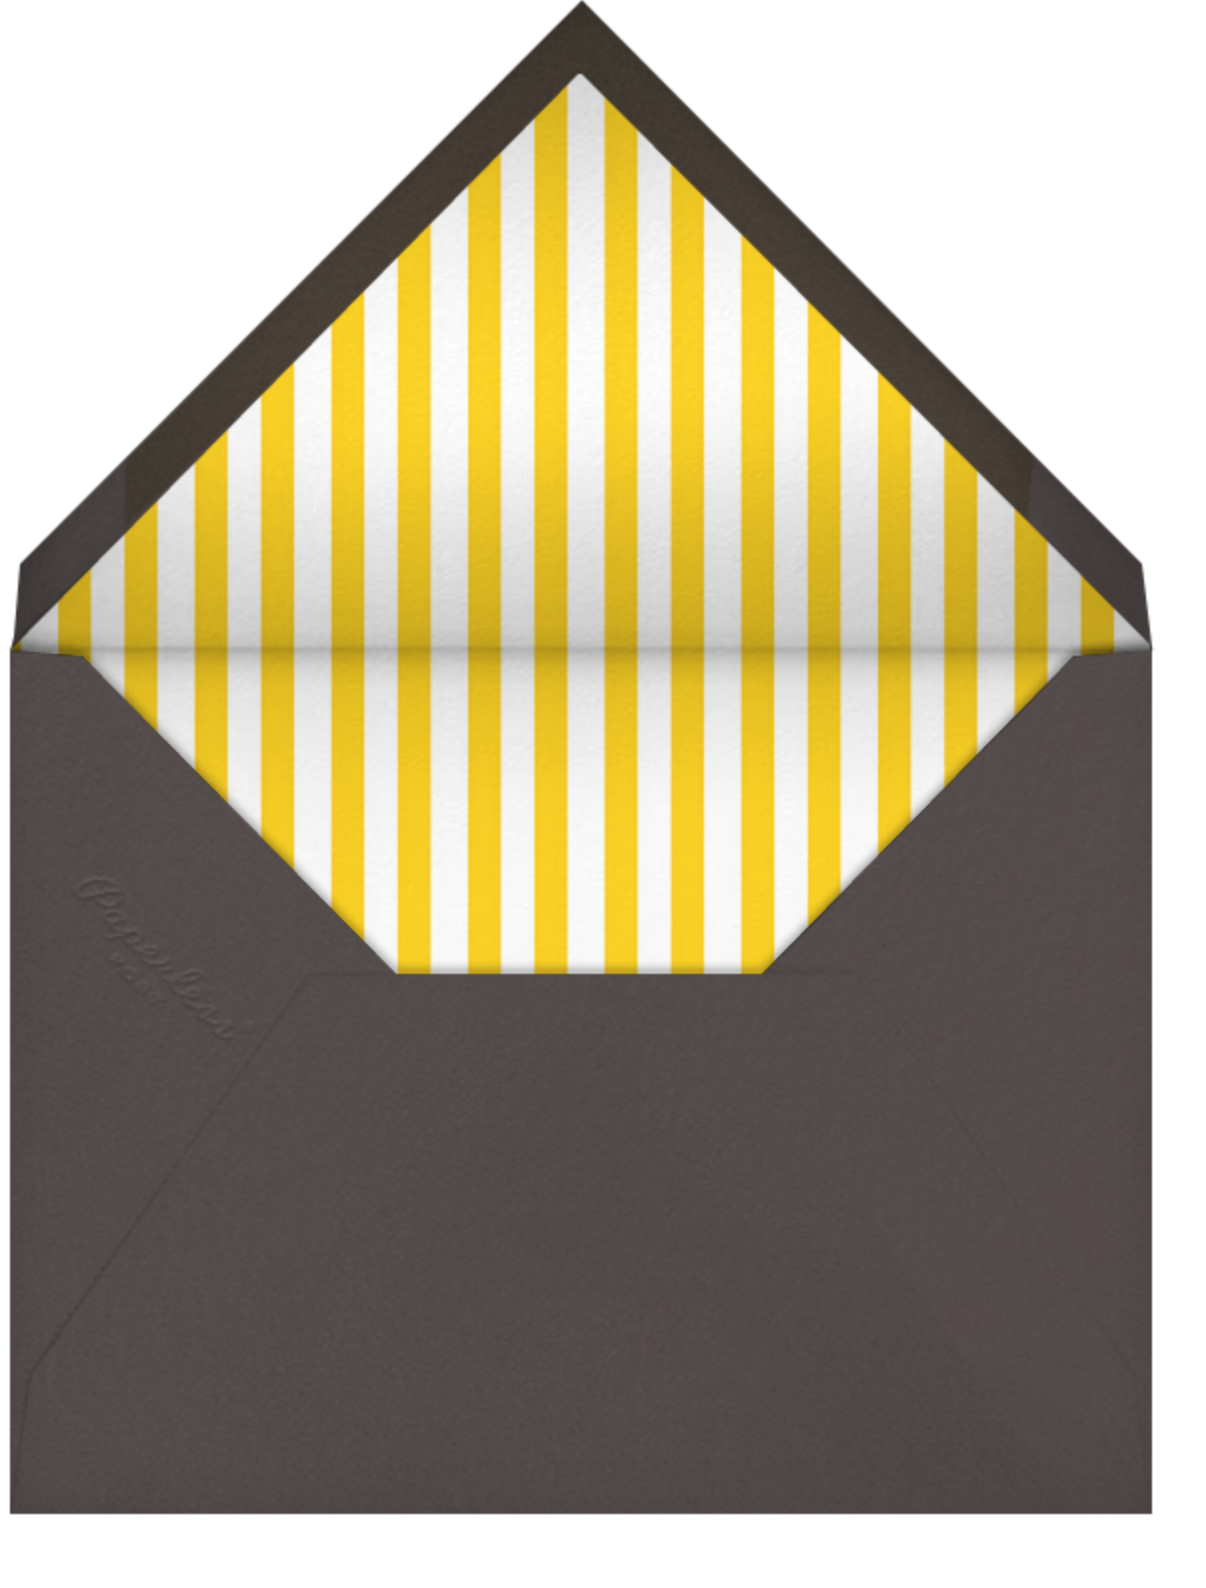 Nixon - Mustard - Jonathan Adler - Cocktail party - envelope back